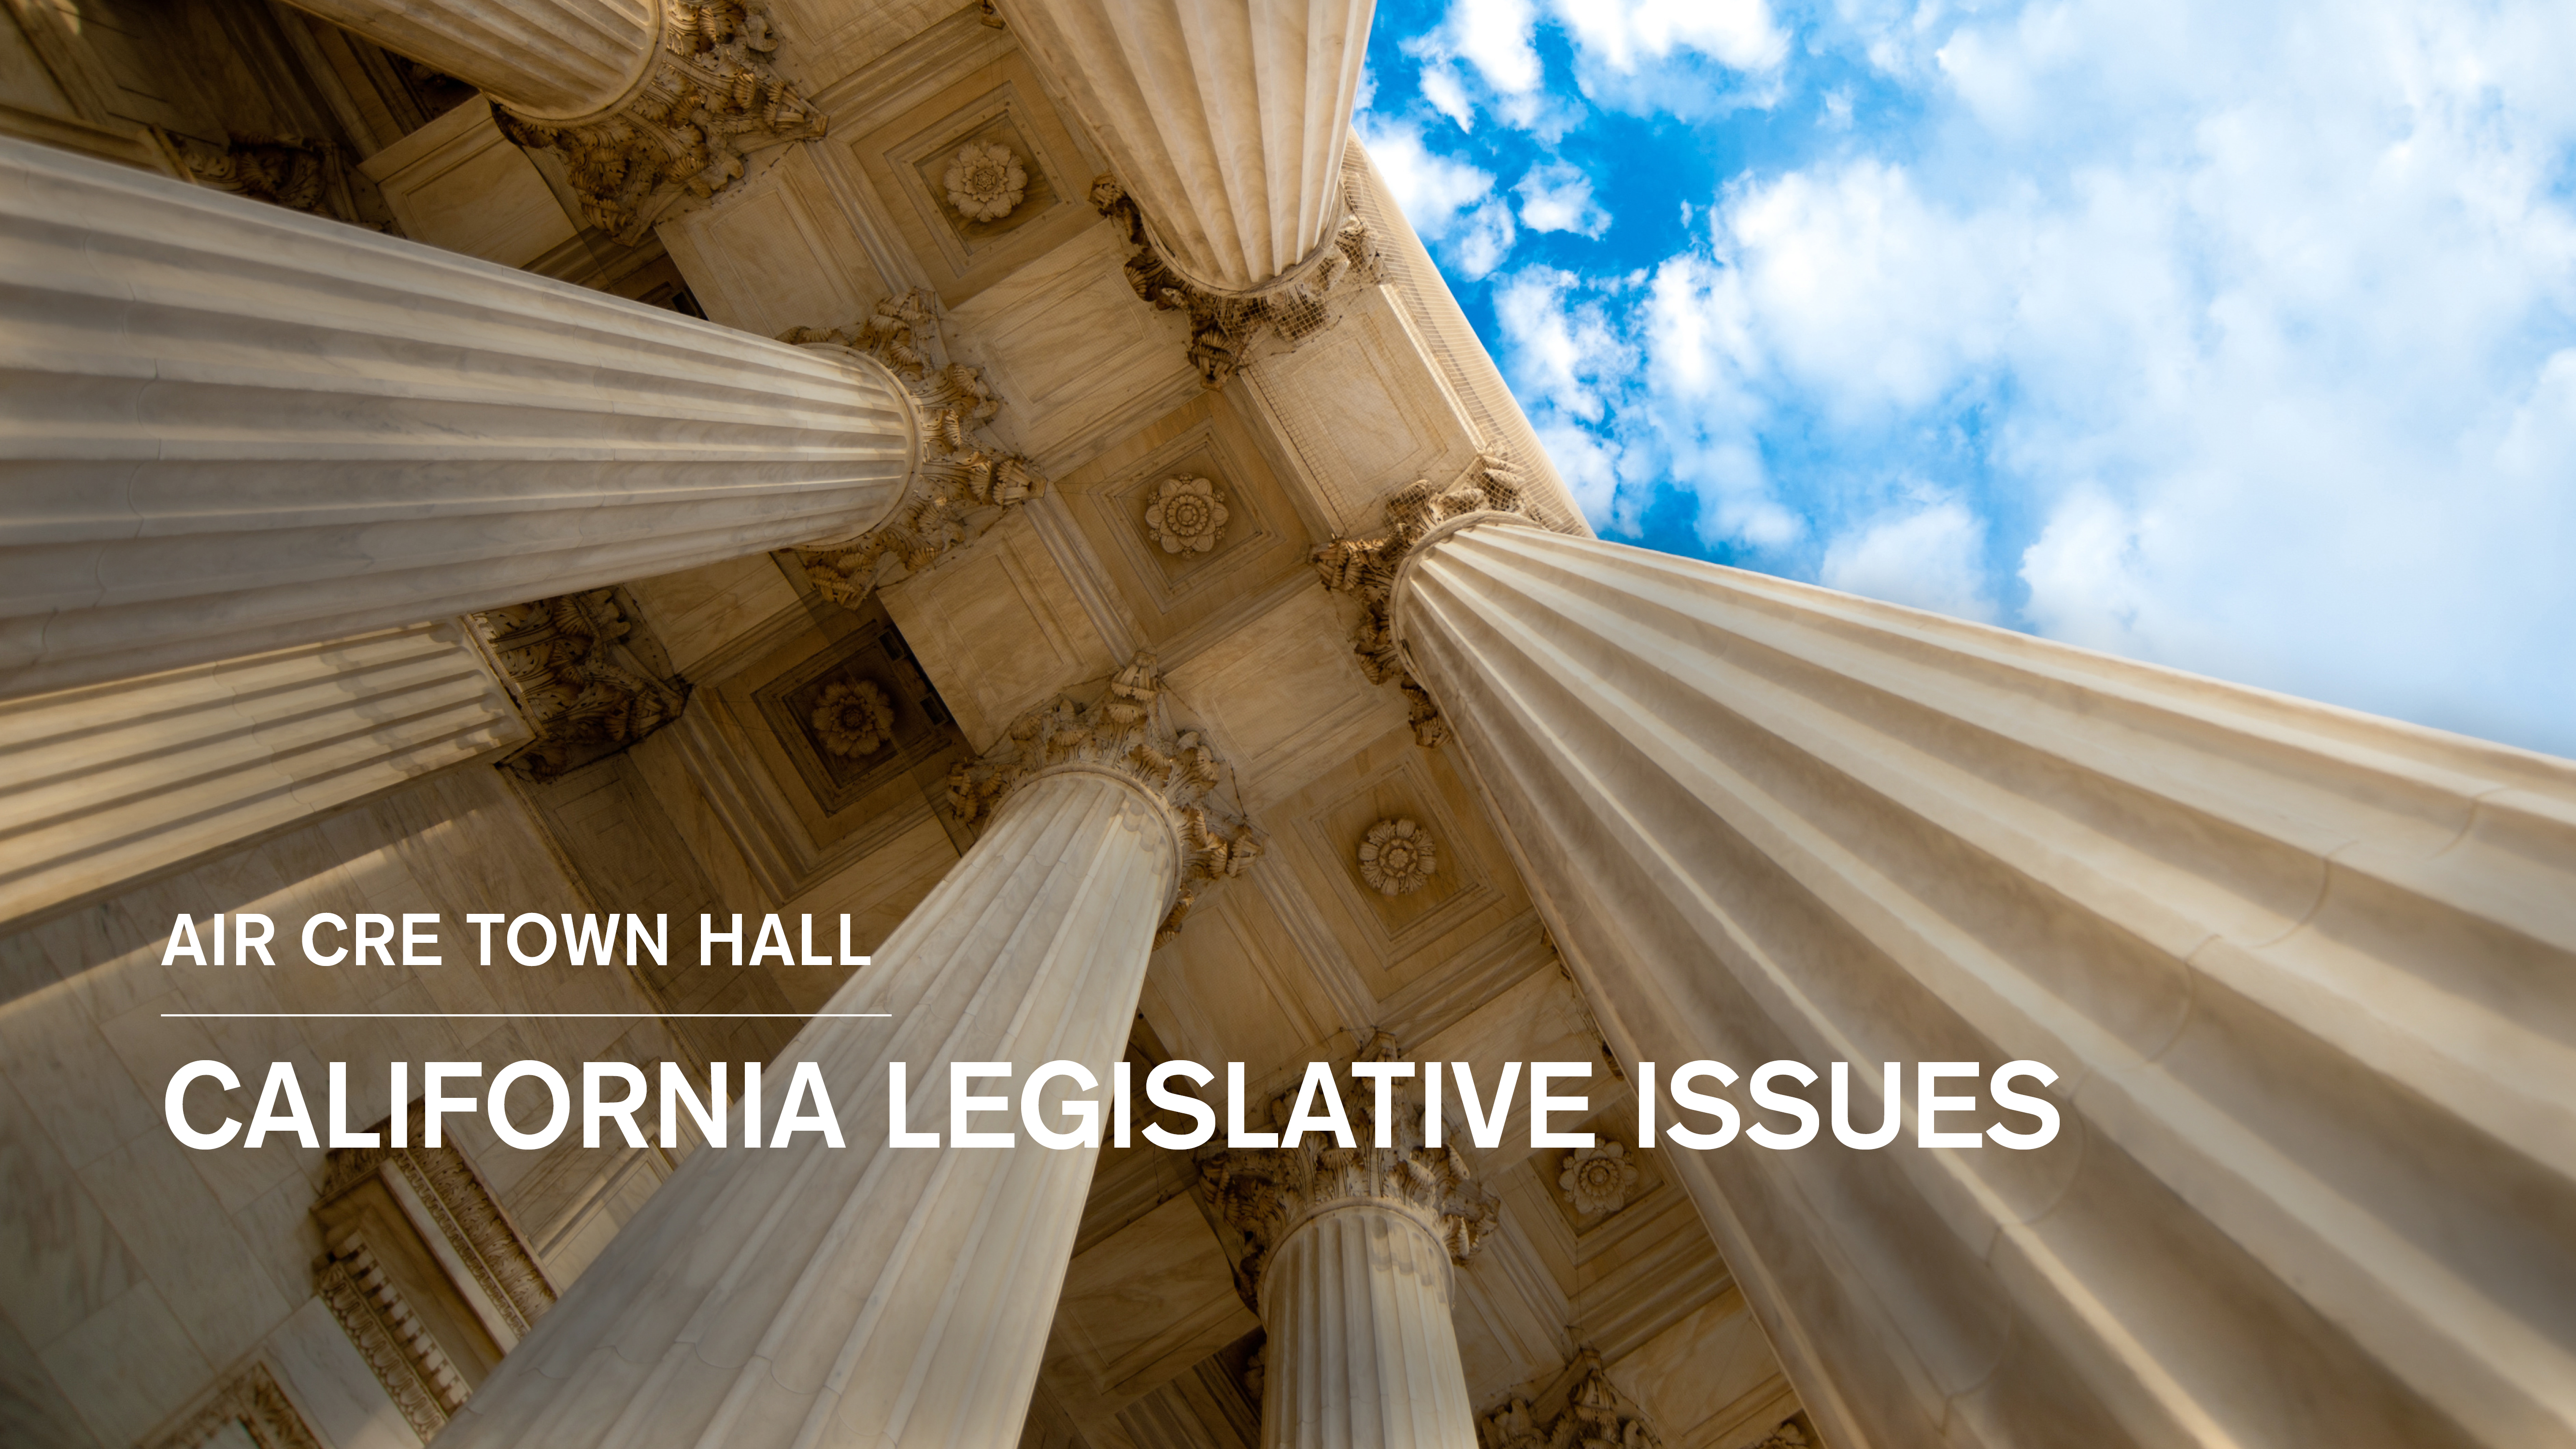 Photo of Columns and title stating AIR CRE Town Hall on CA Legislative Issues